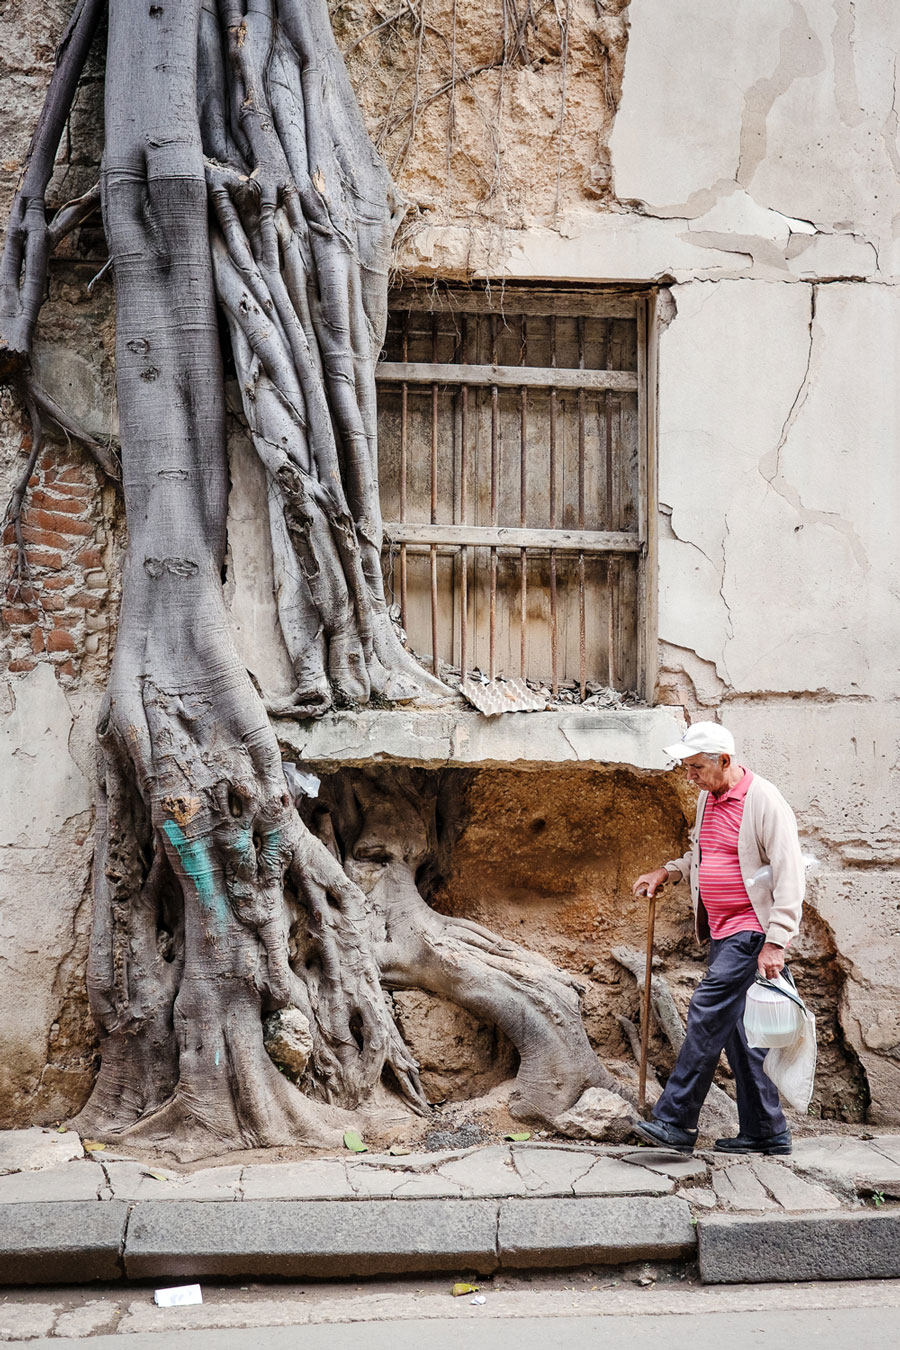 cuba-2016-old-man-passing-tree-out-of-wall-street-havana